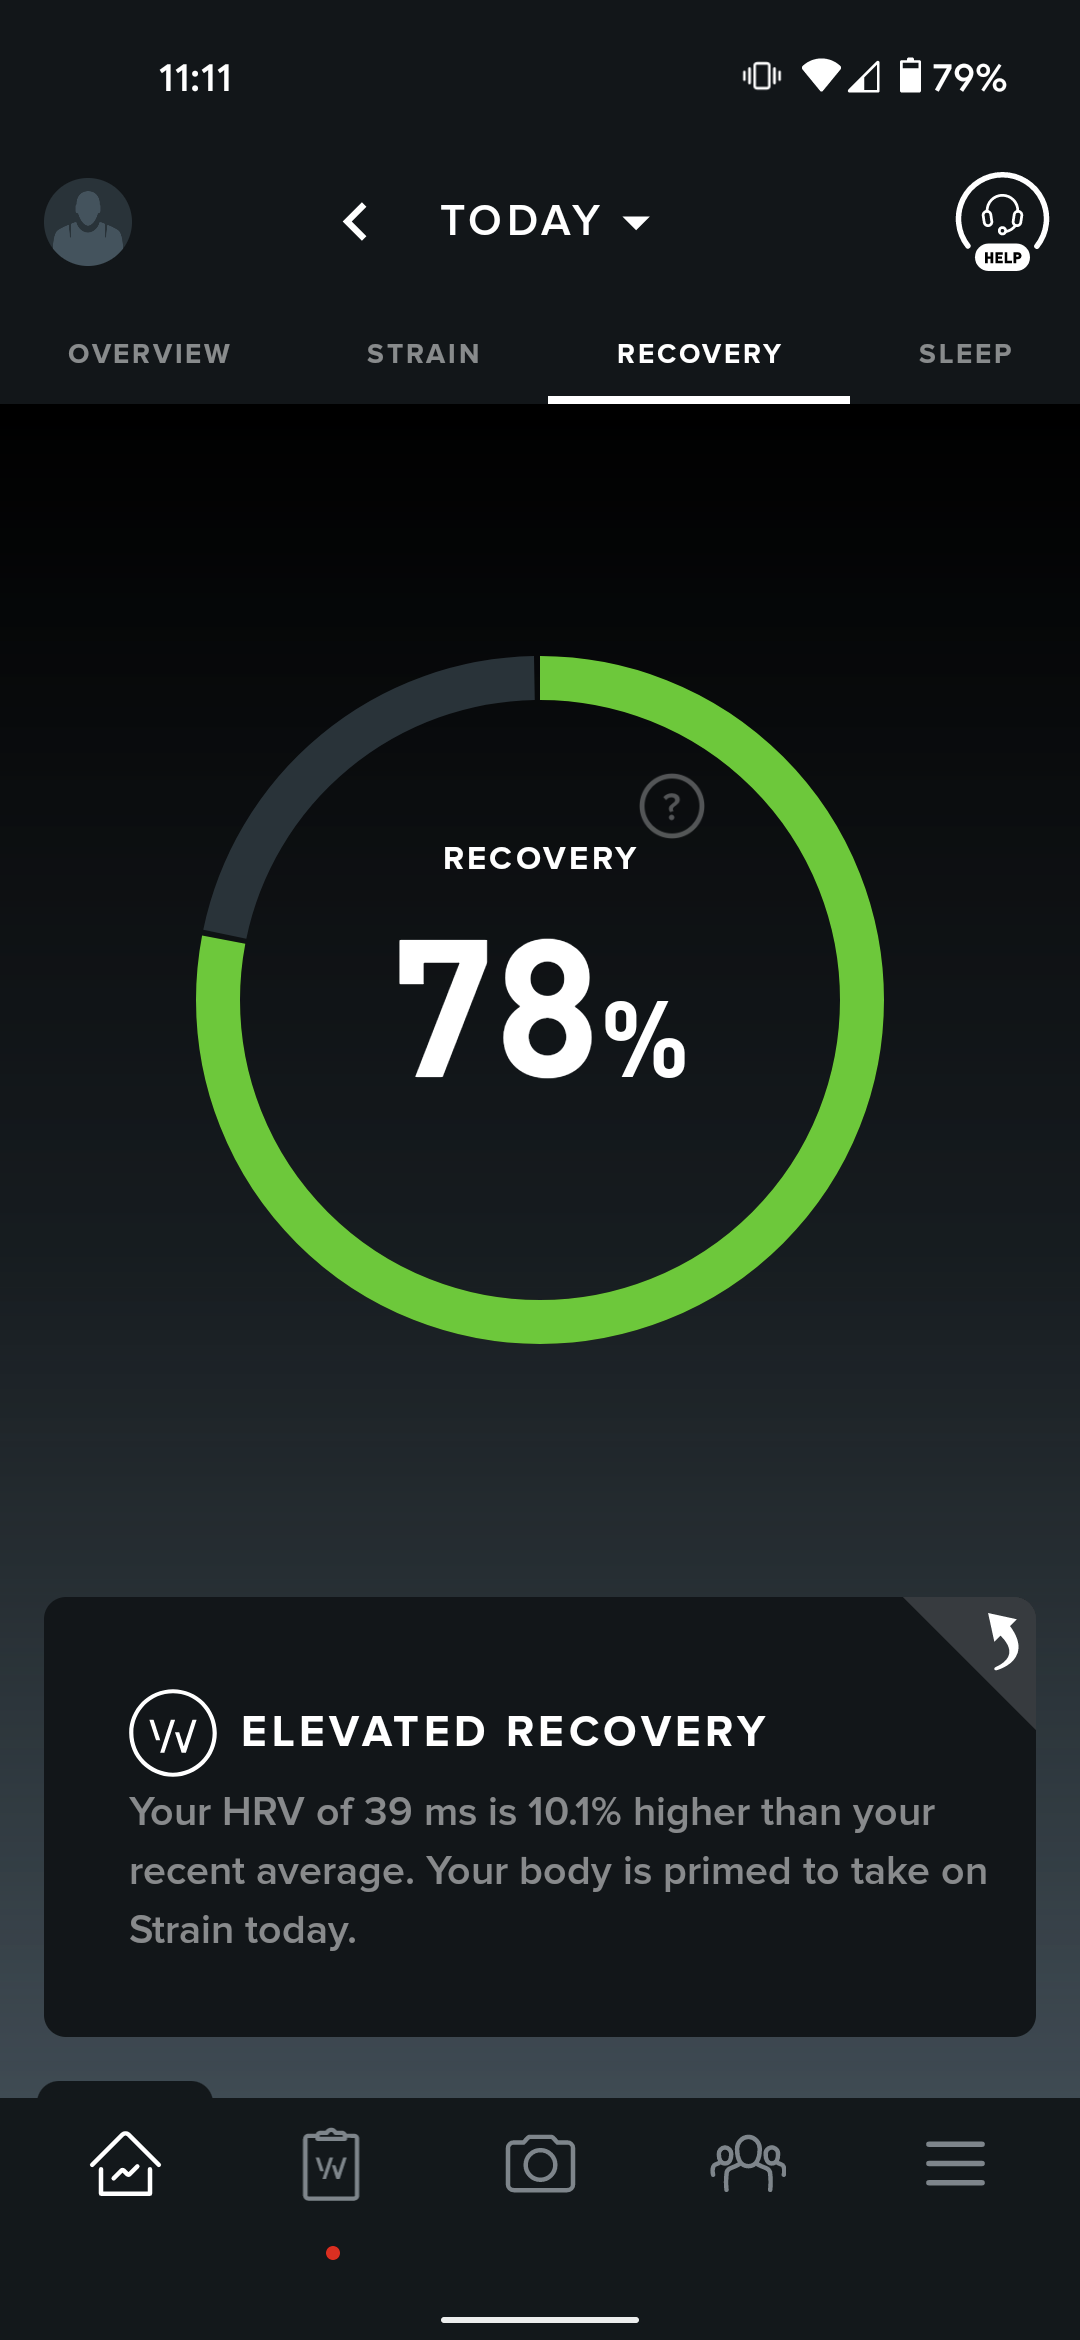 Whoop's recovery feature